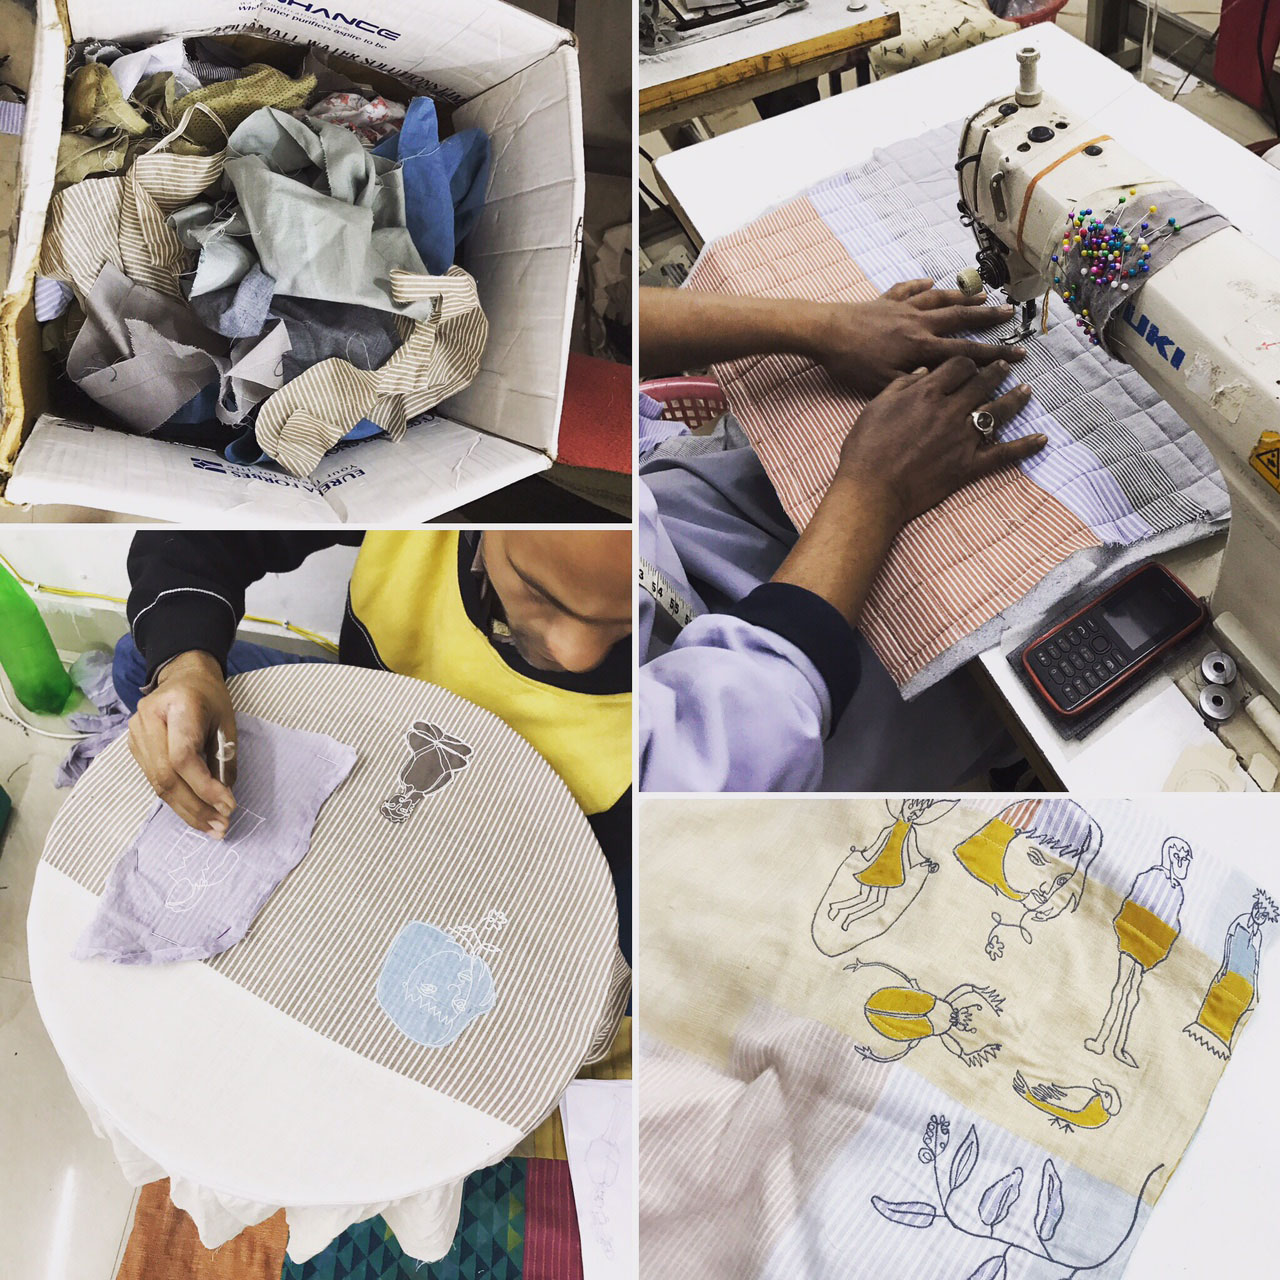 Clockwise from Top Left: Fabric scraps as they arrive at the  Doodlage    studio, followed by quilting, layering, patchwork, and even embroidery using scrap fabric.